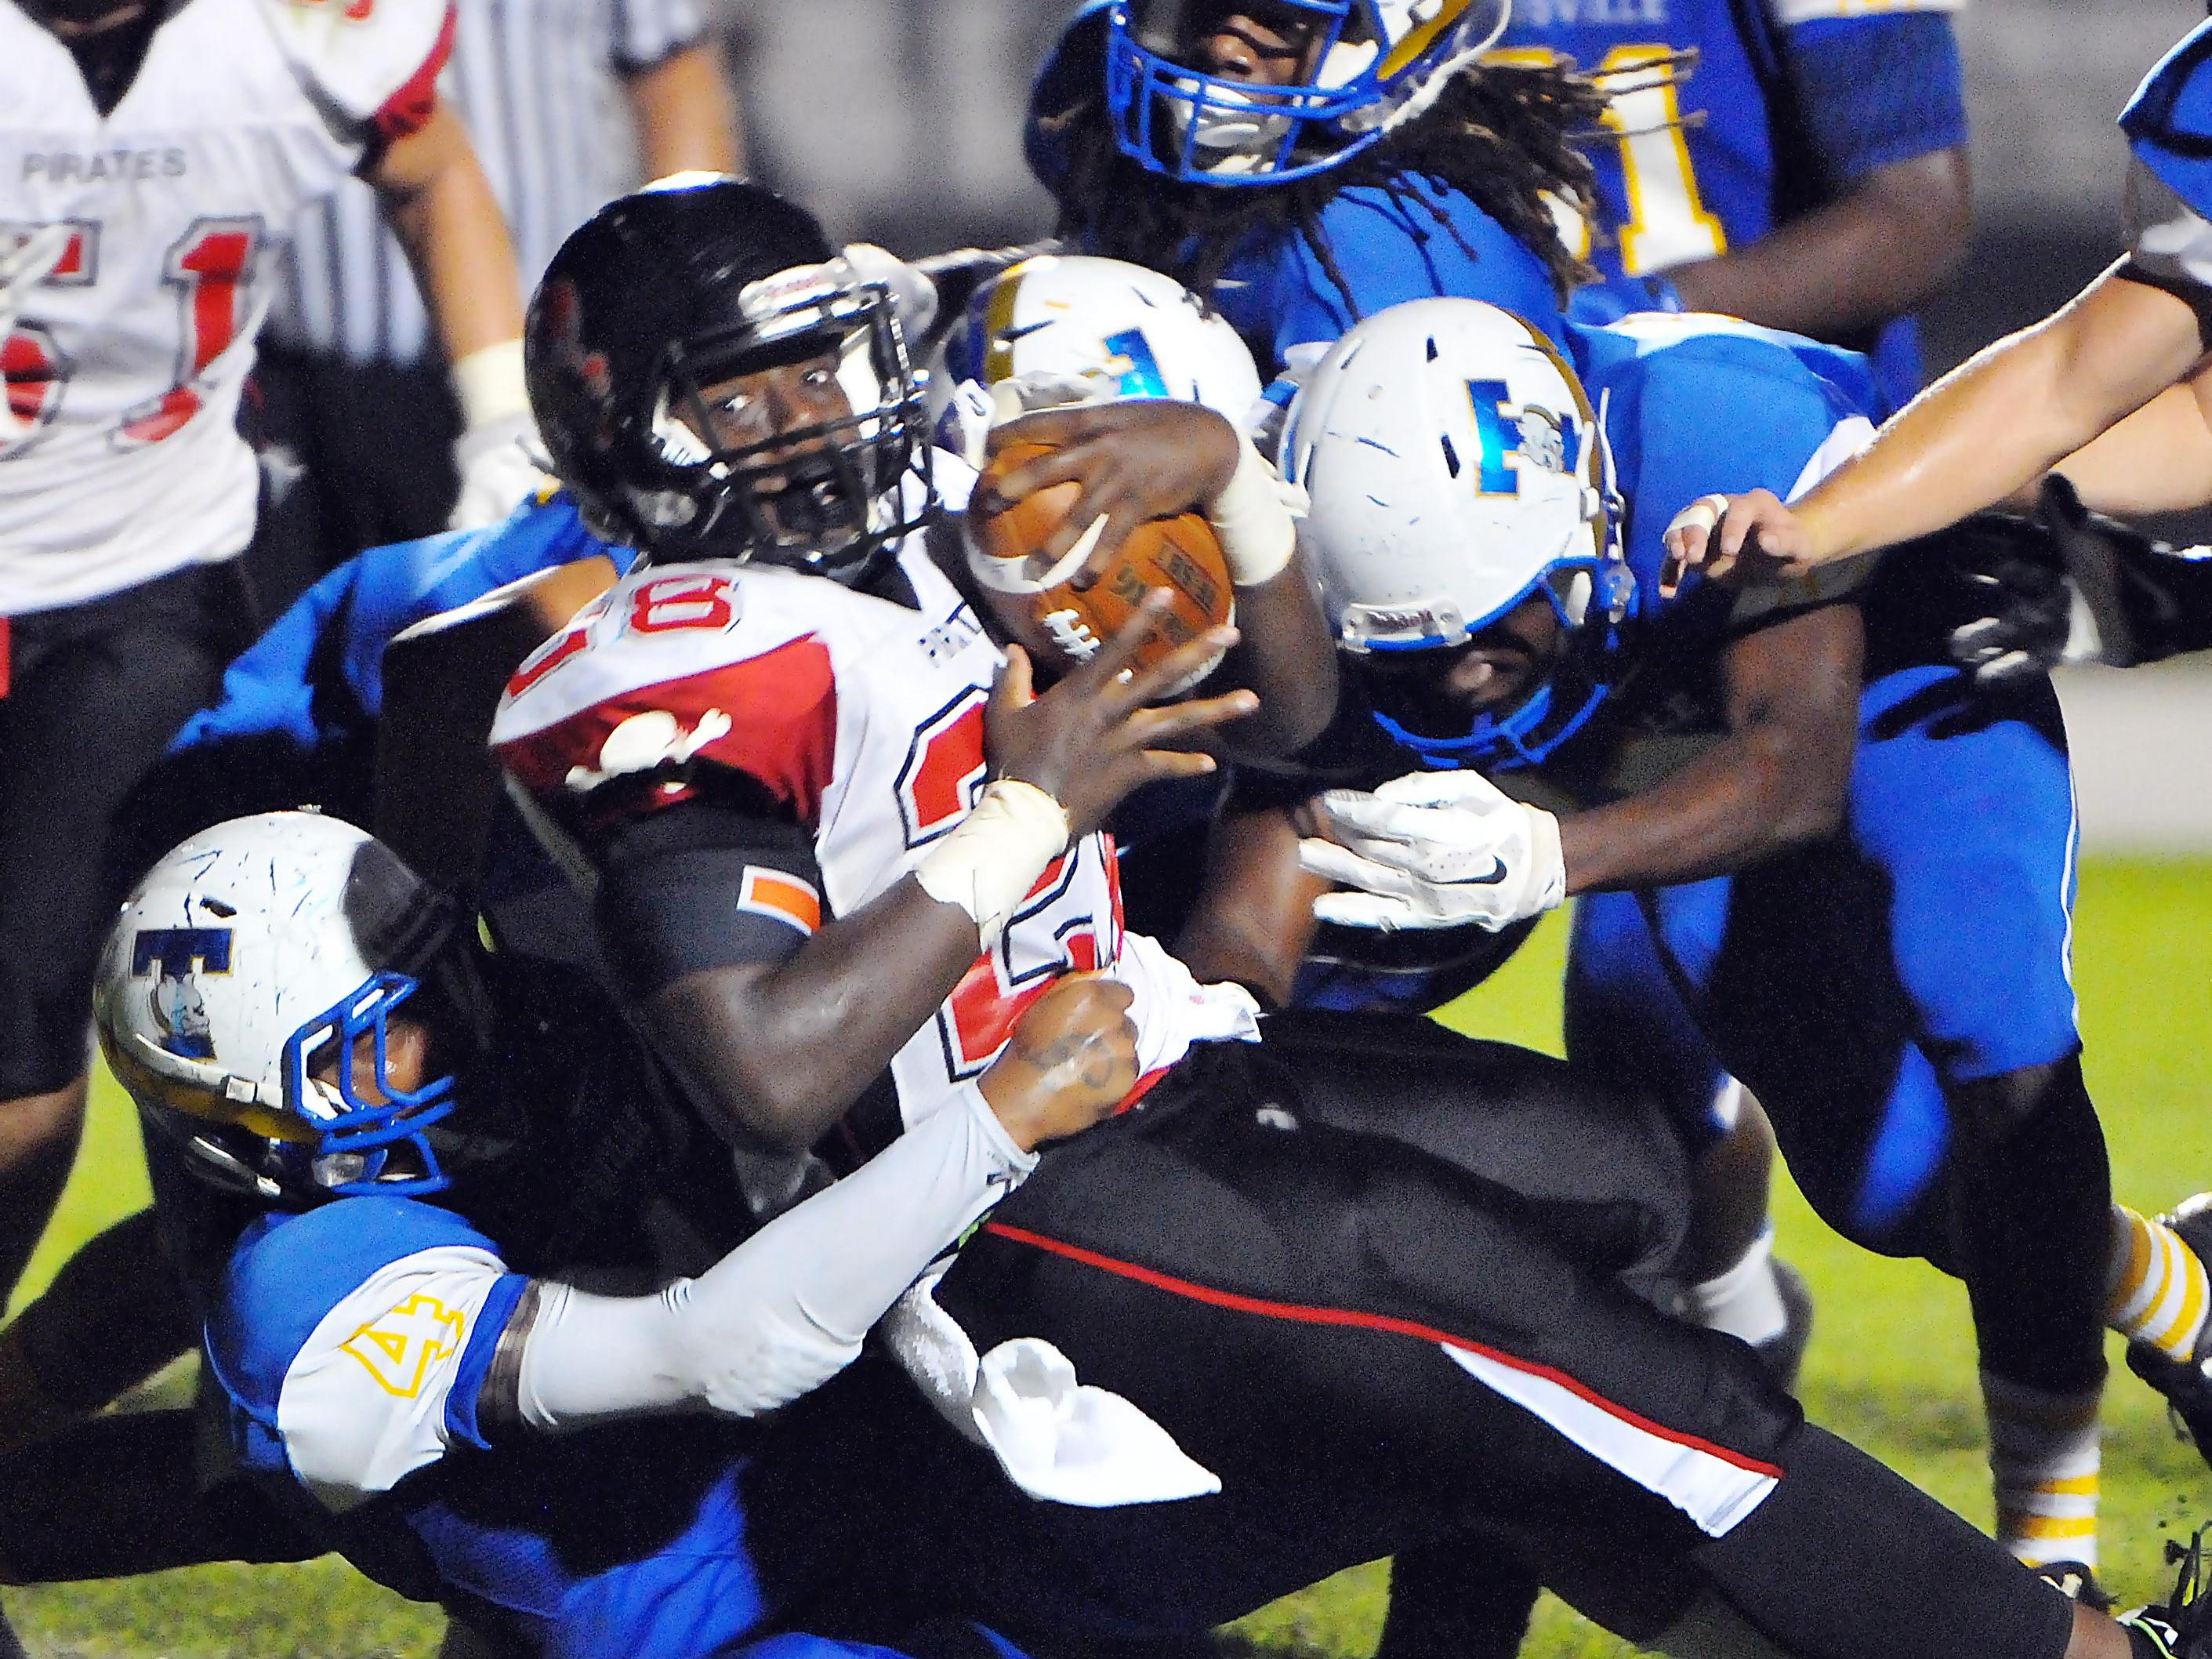 Palm Bay High's Tyshaun Rolle (28) drags a Titusville High defender into the end zone for a second quarter touchdown at Titusville High School.